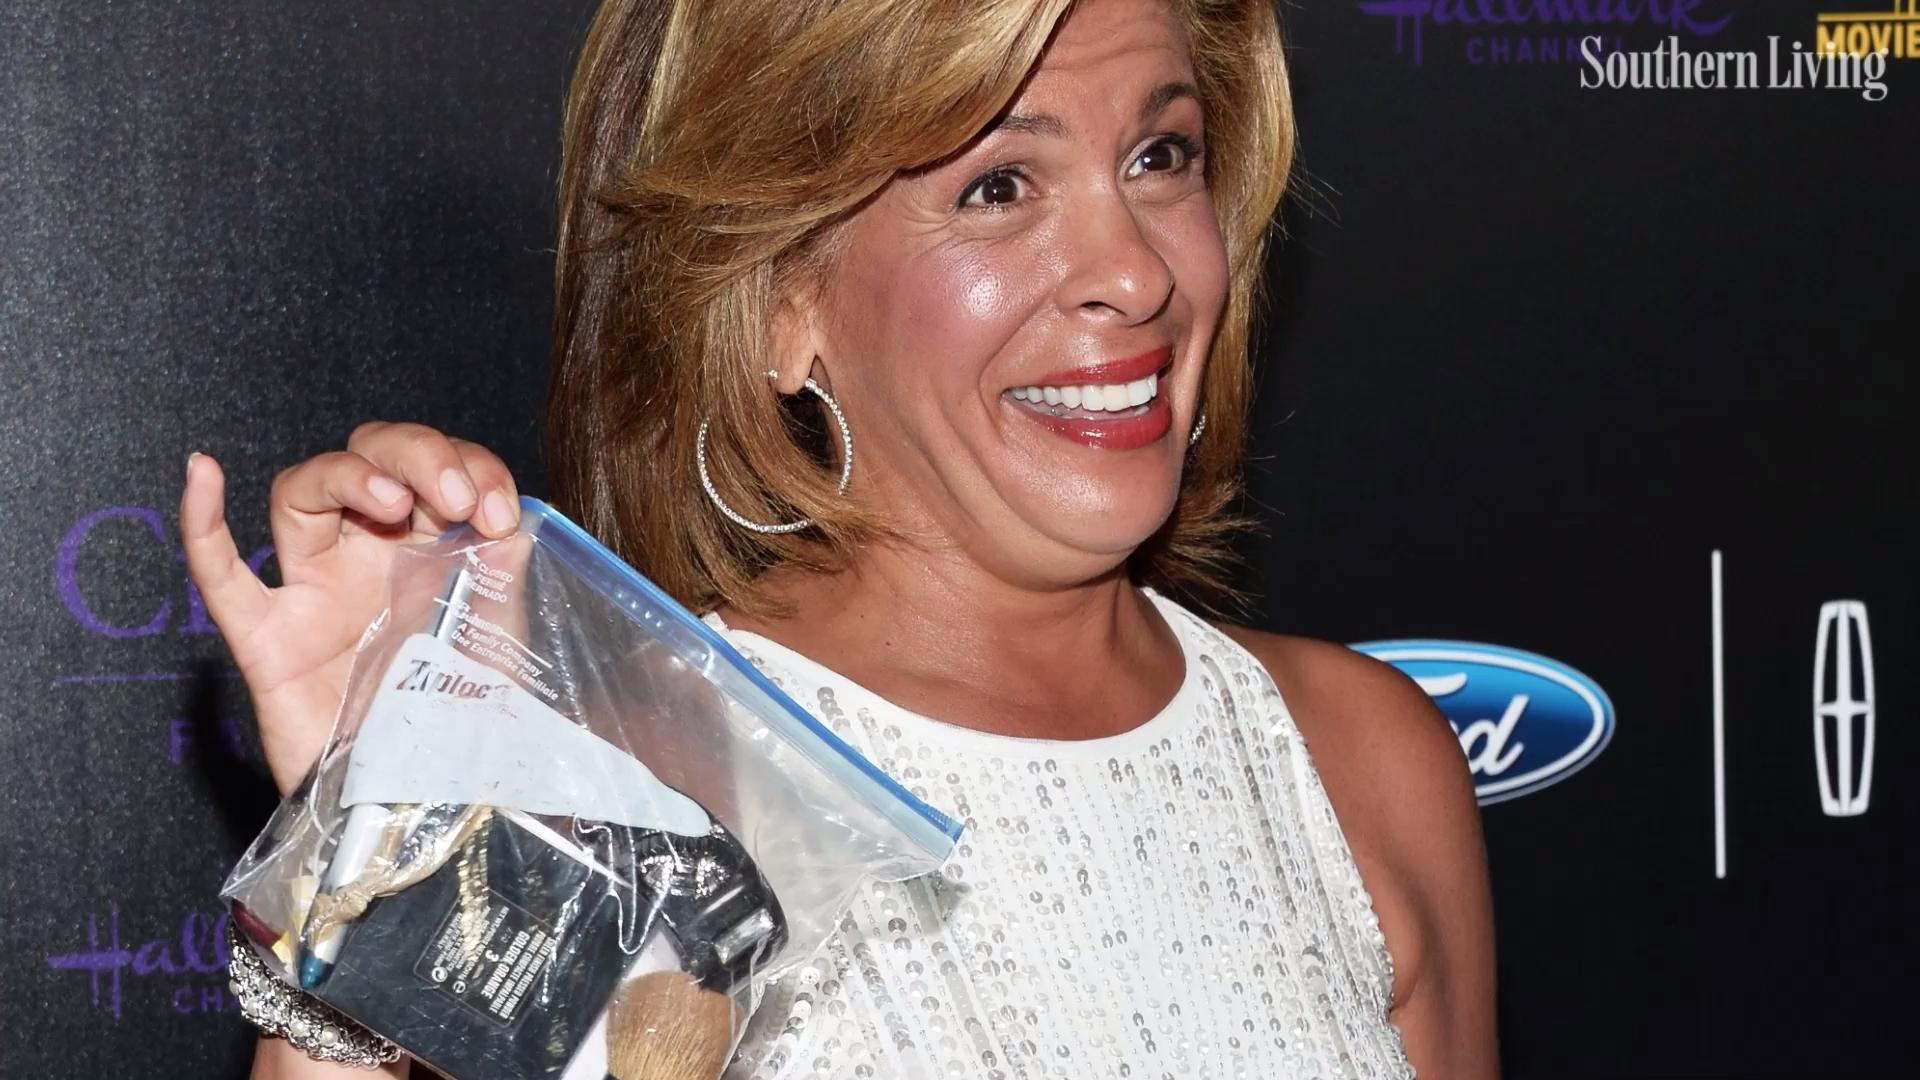 Hoda Kotb Used A Ziploc Bag As Purse